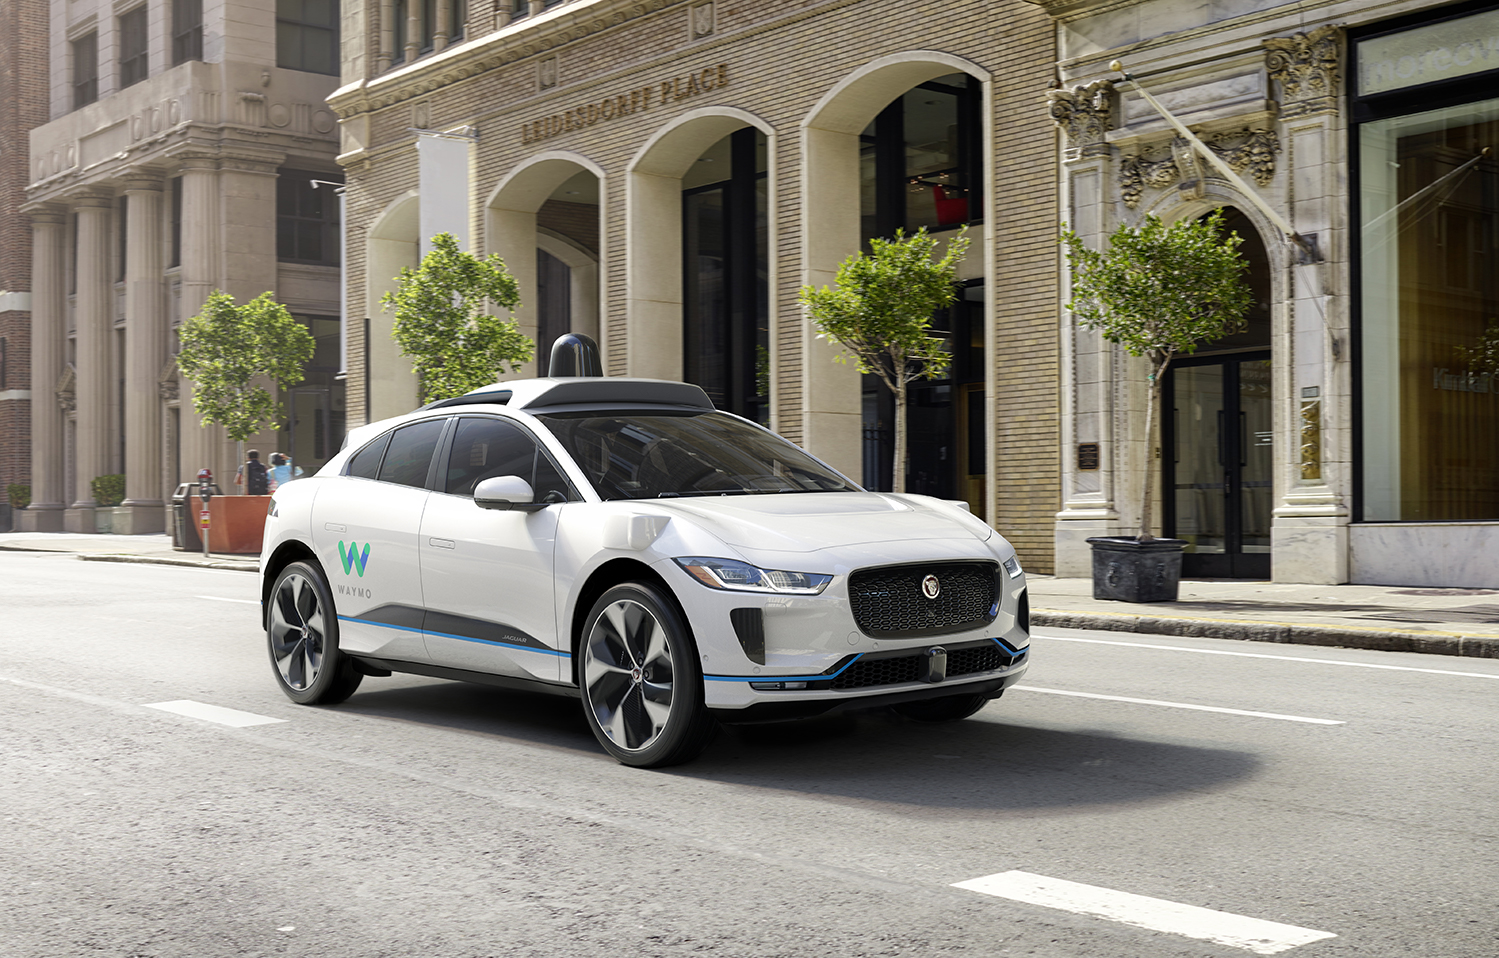 Great Conversations: Will the self-driving future eliminate road rage? thumbnail